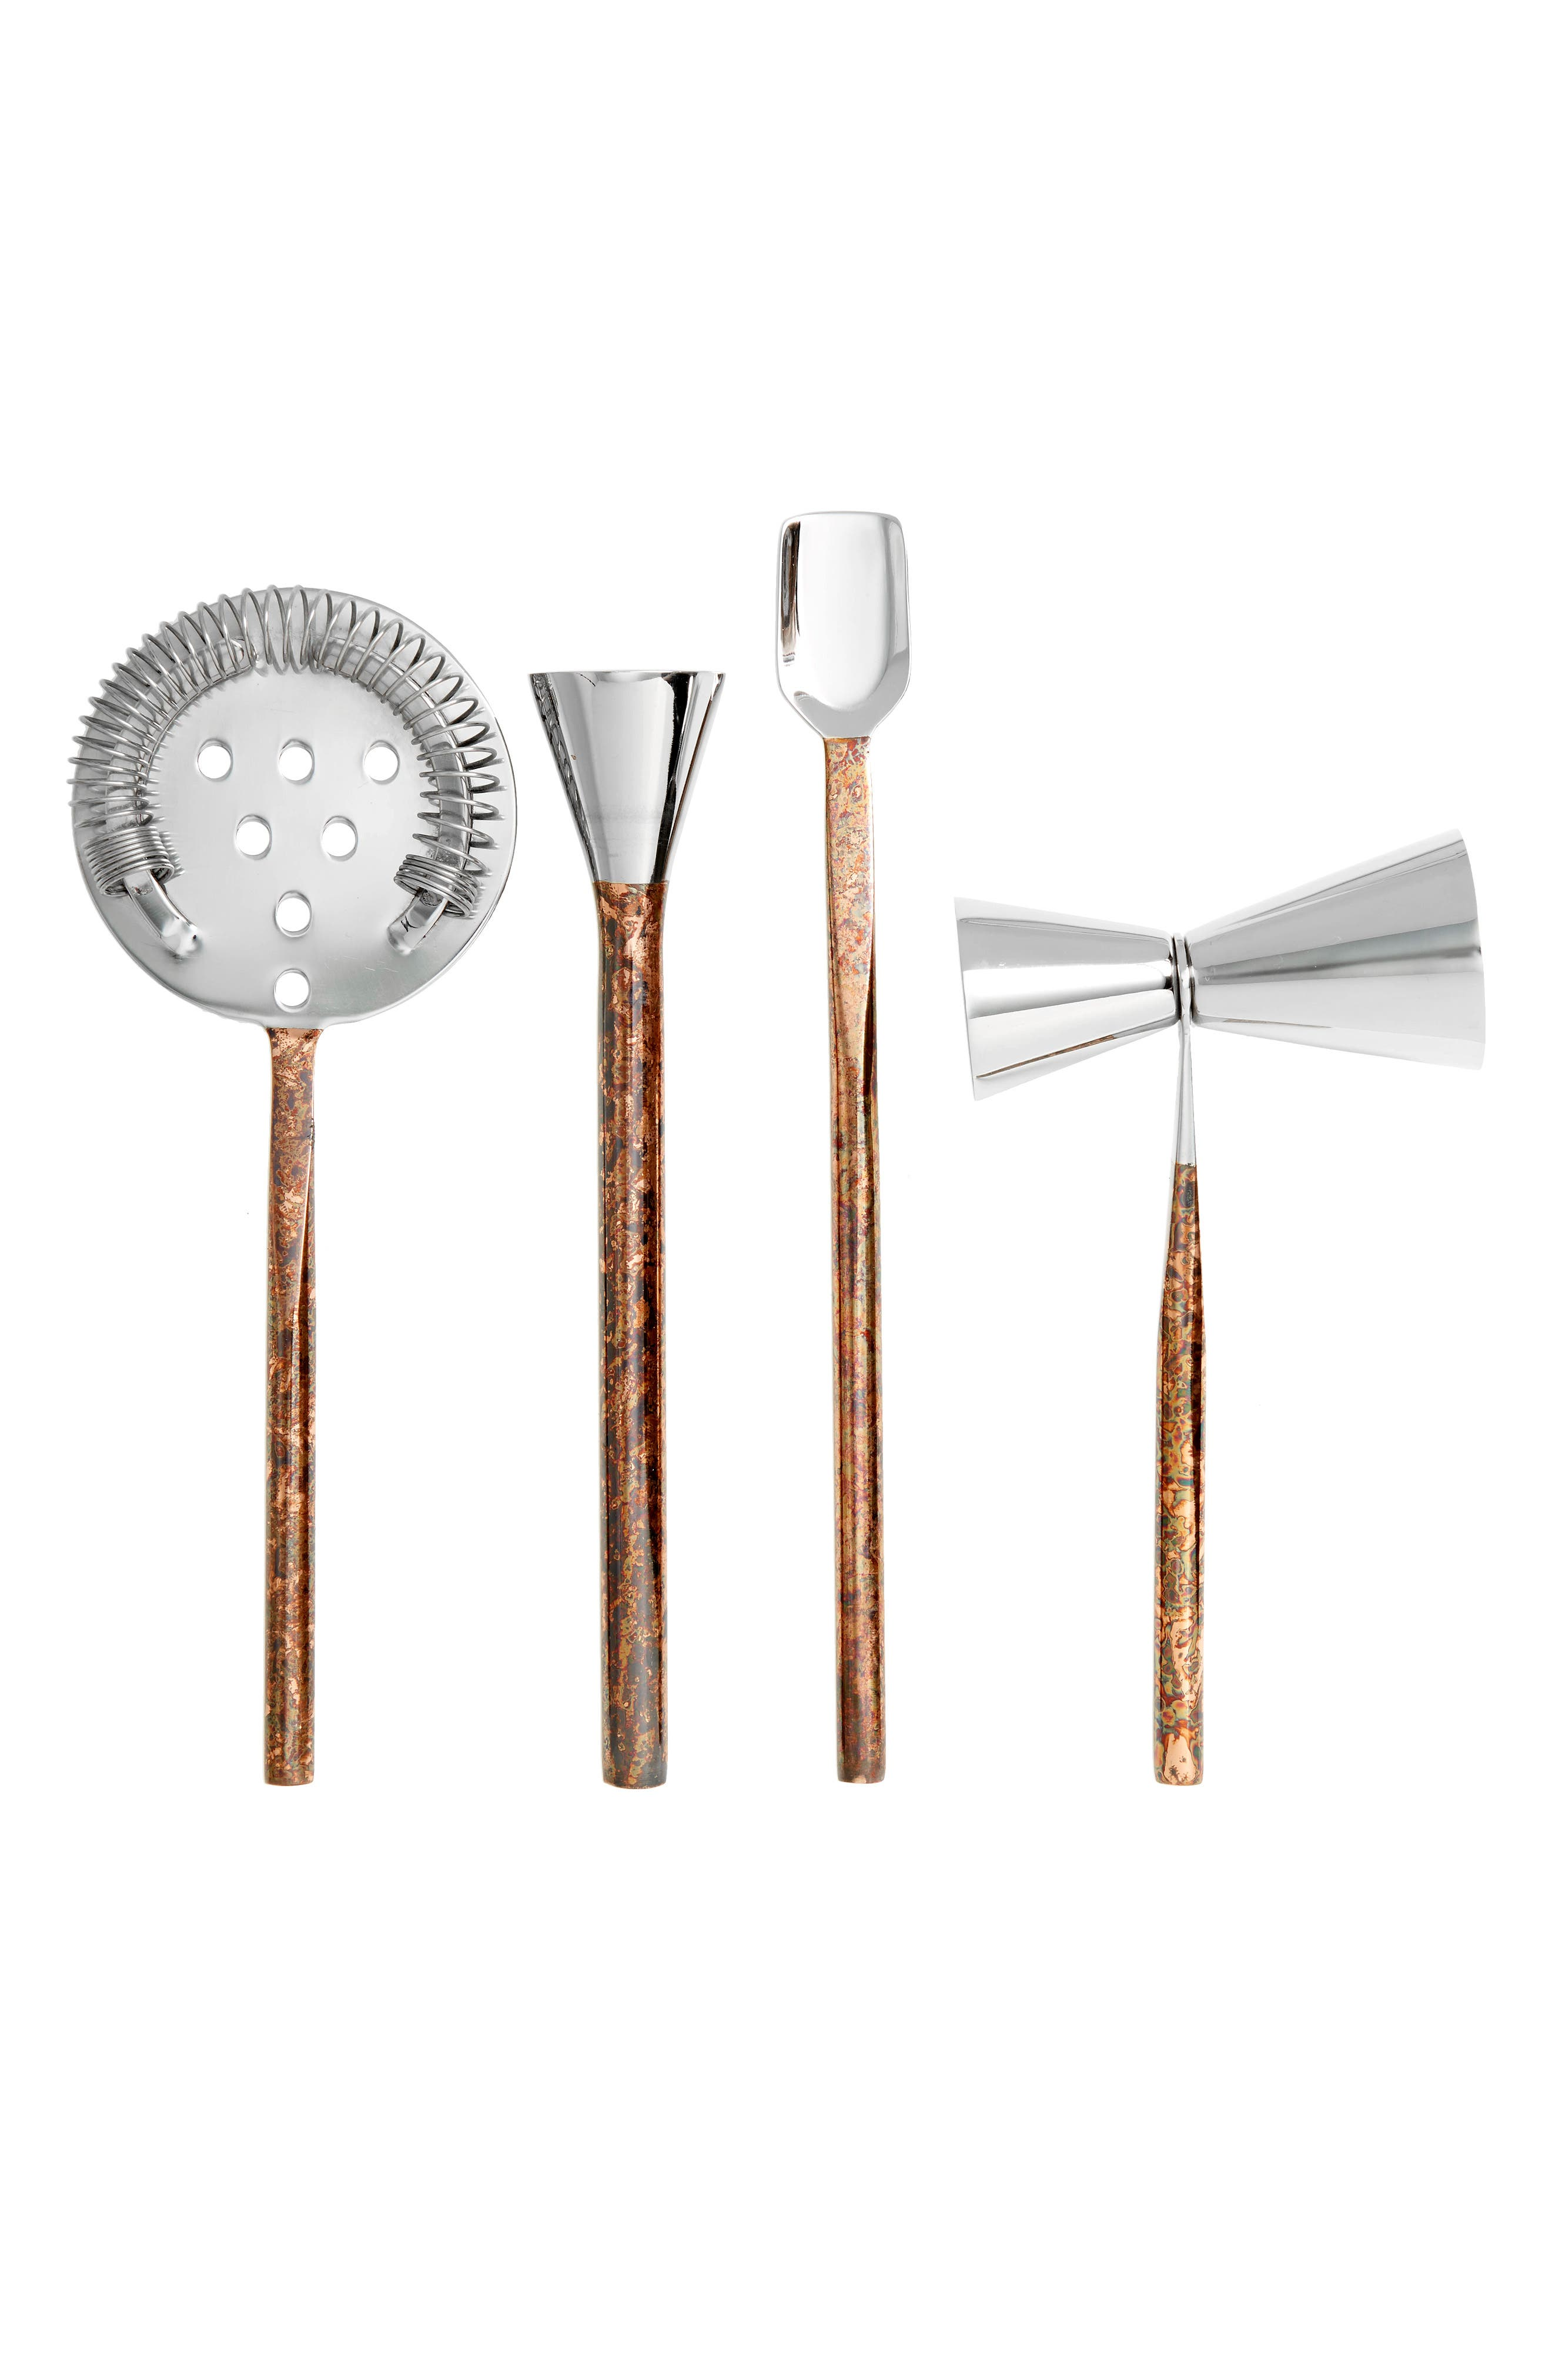 Alternate Image 1 Selected - Nordstrom at Home 4-Piece Distressed Copper & Stainless Steel Bar Set